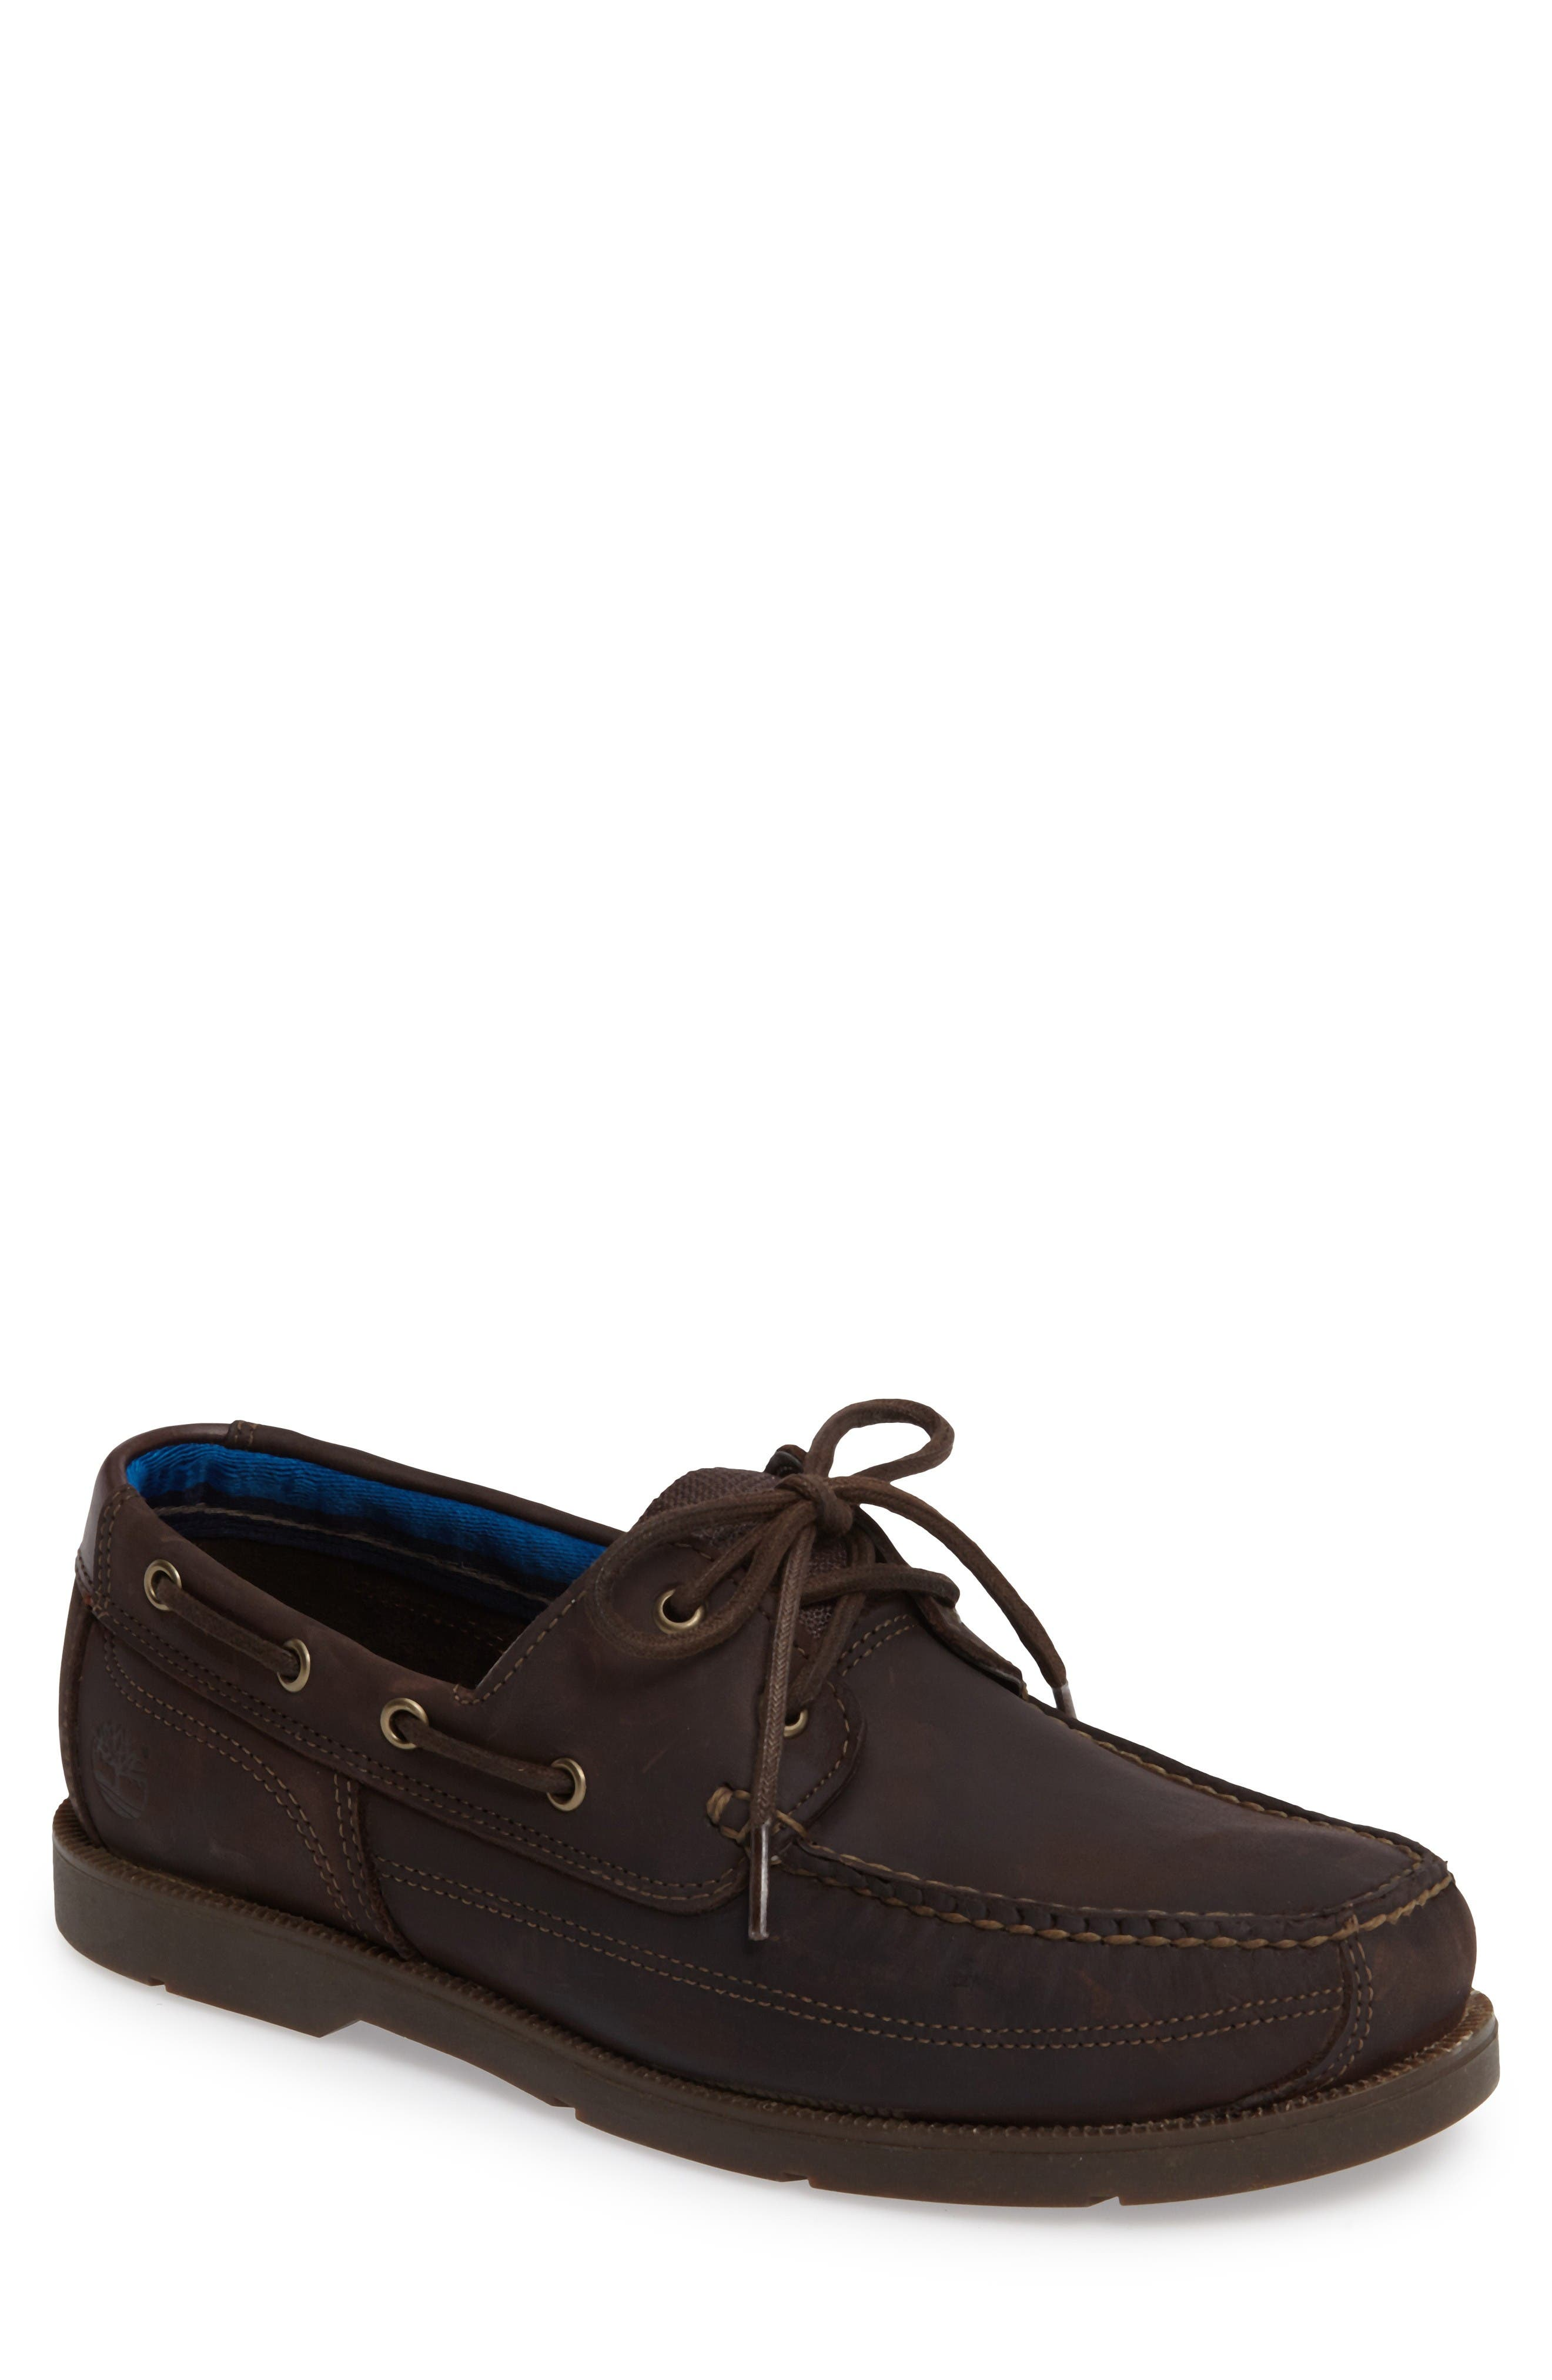 Piper Cove FG Boat Shoe,                             Main thumbnail 1, color,                             Chocolate Leather